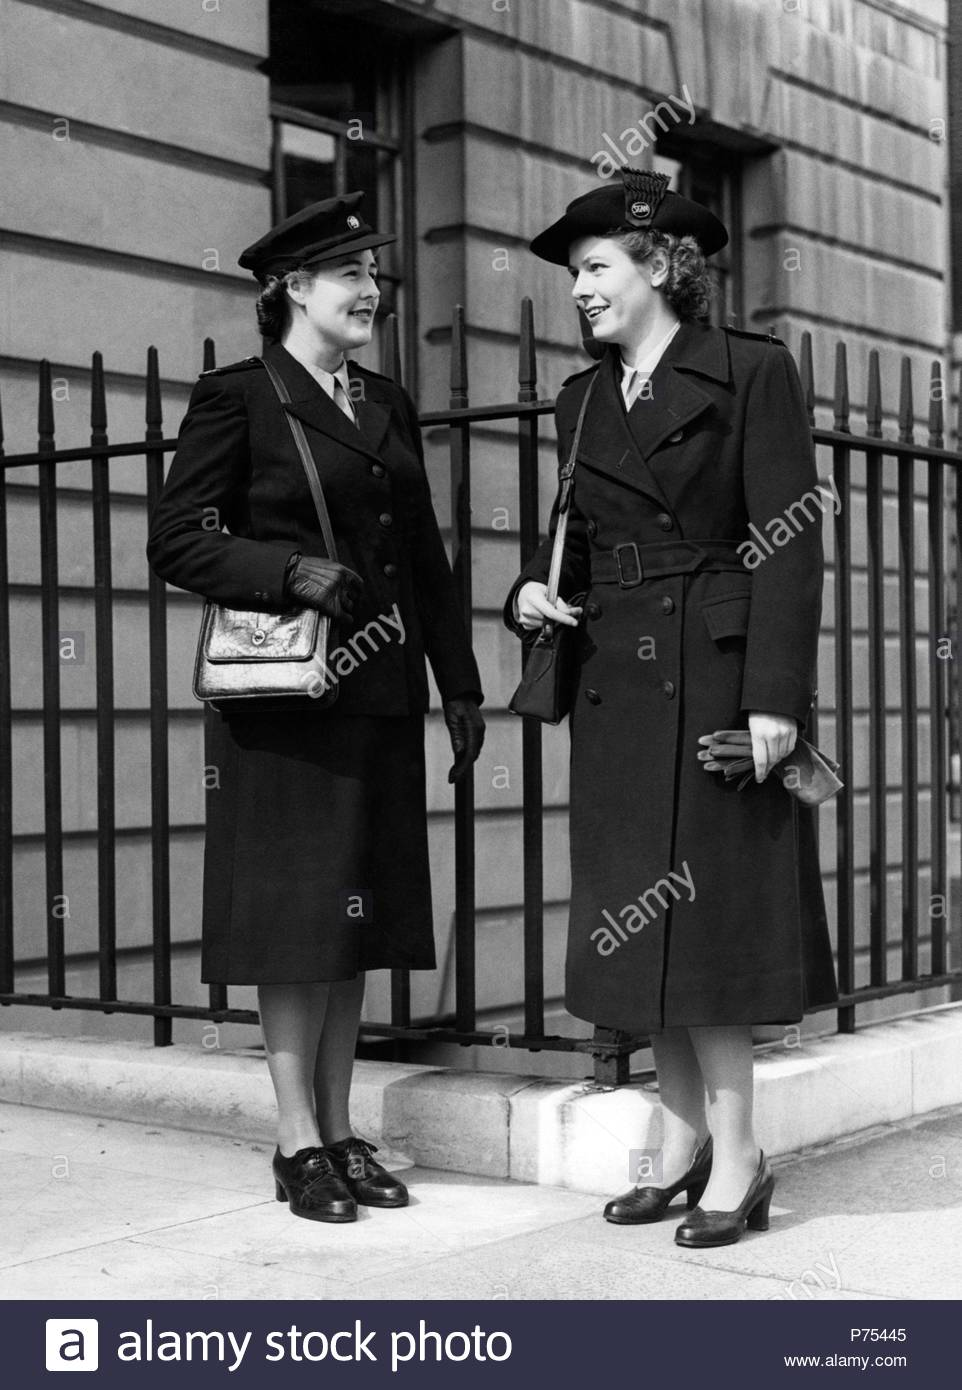 File photo dated 27/09/48 of the uniforms to be worn by State Registered Nurses (left) and State Enrolled Assistant Nurses for the then newly formed National Health Service (NHS). - Stock Image